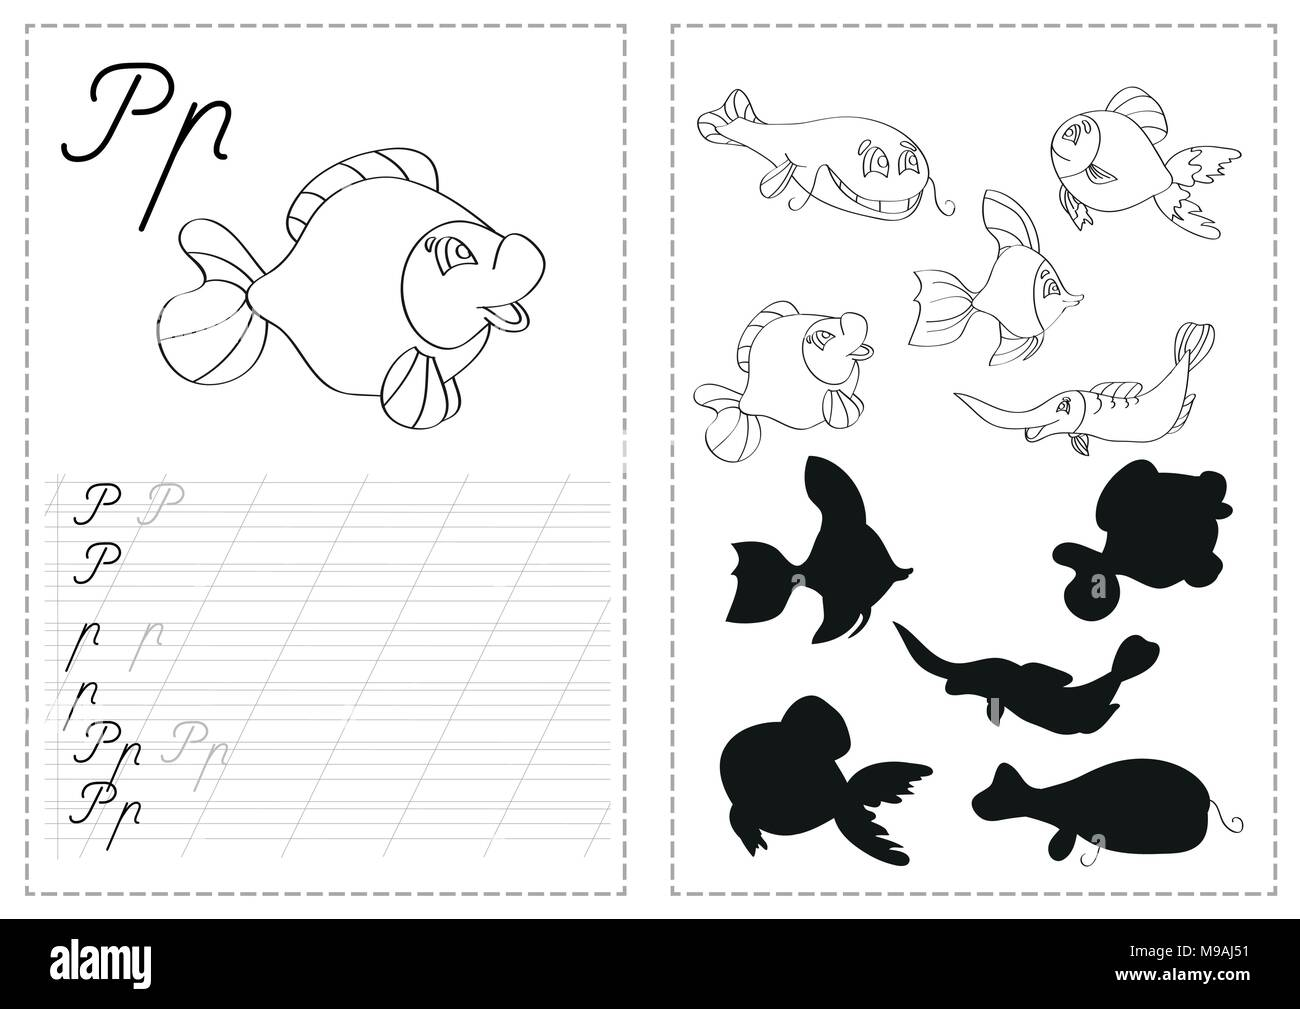 Vocabulary Stock Vector Images - Alamy